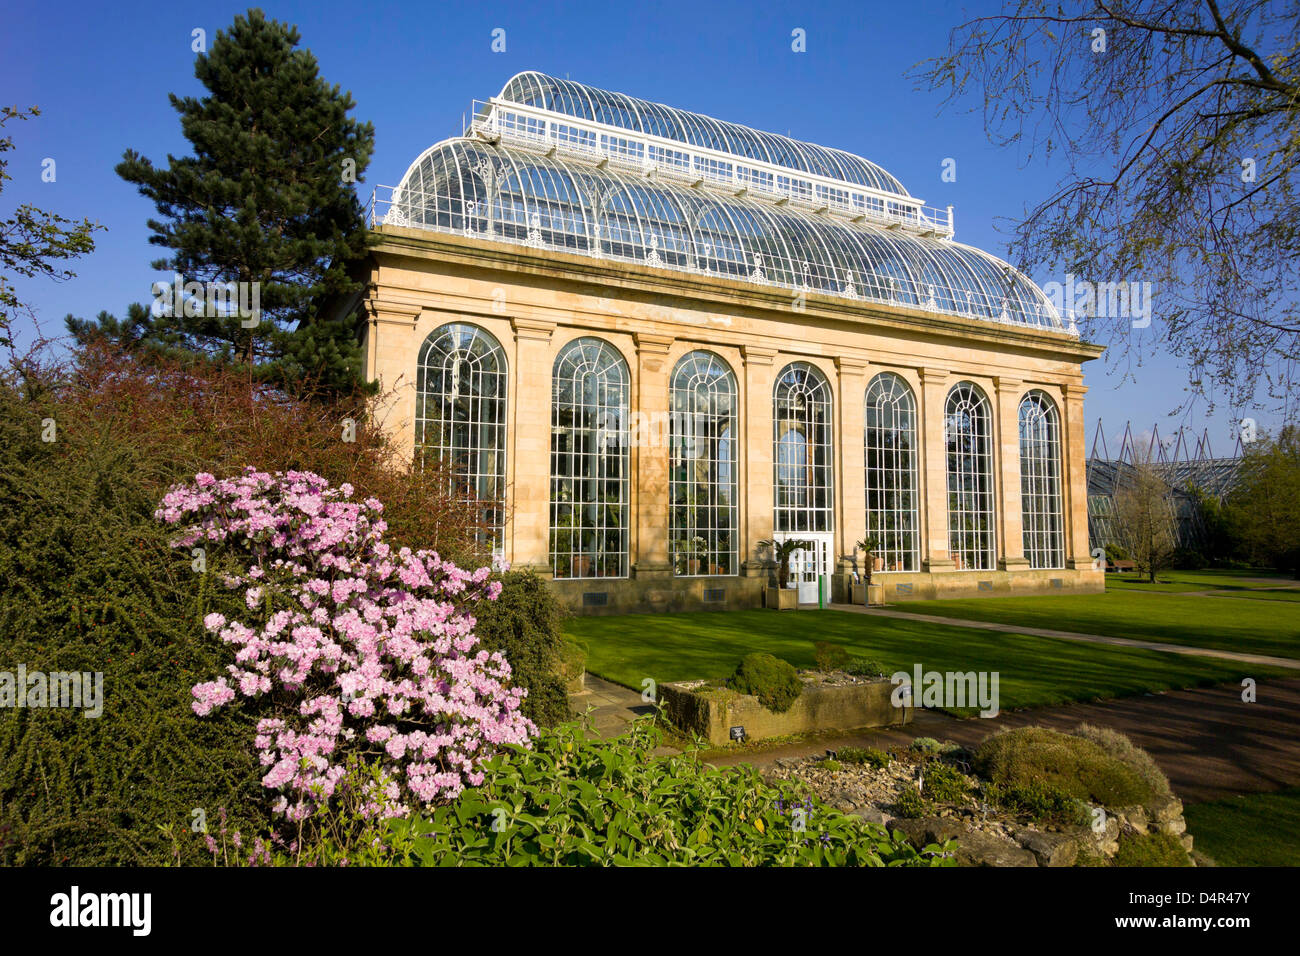 the palm house at royal botanic gardens - Stock Image